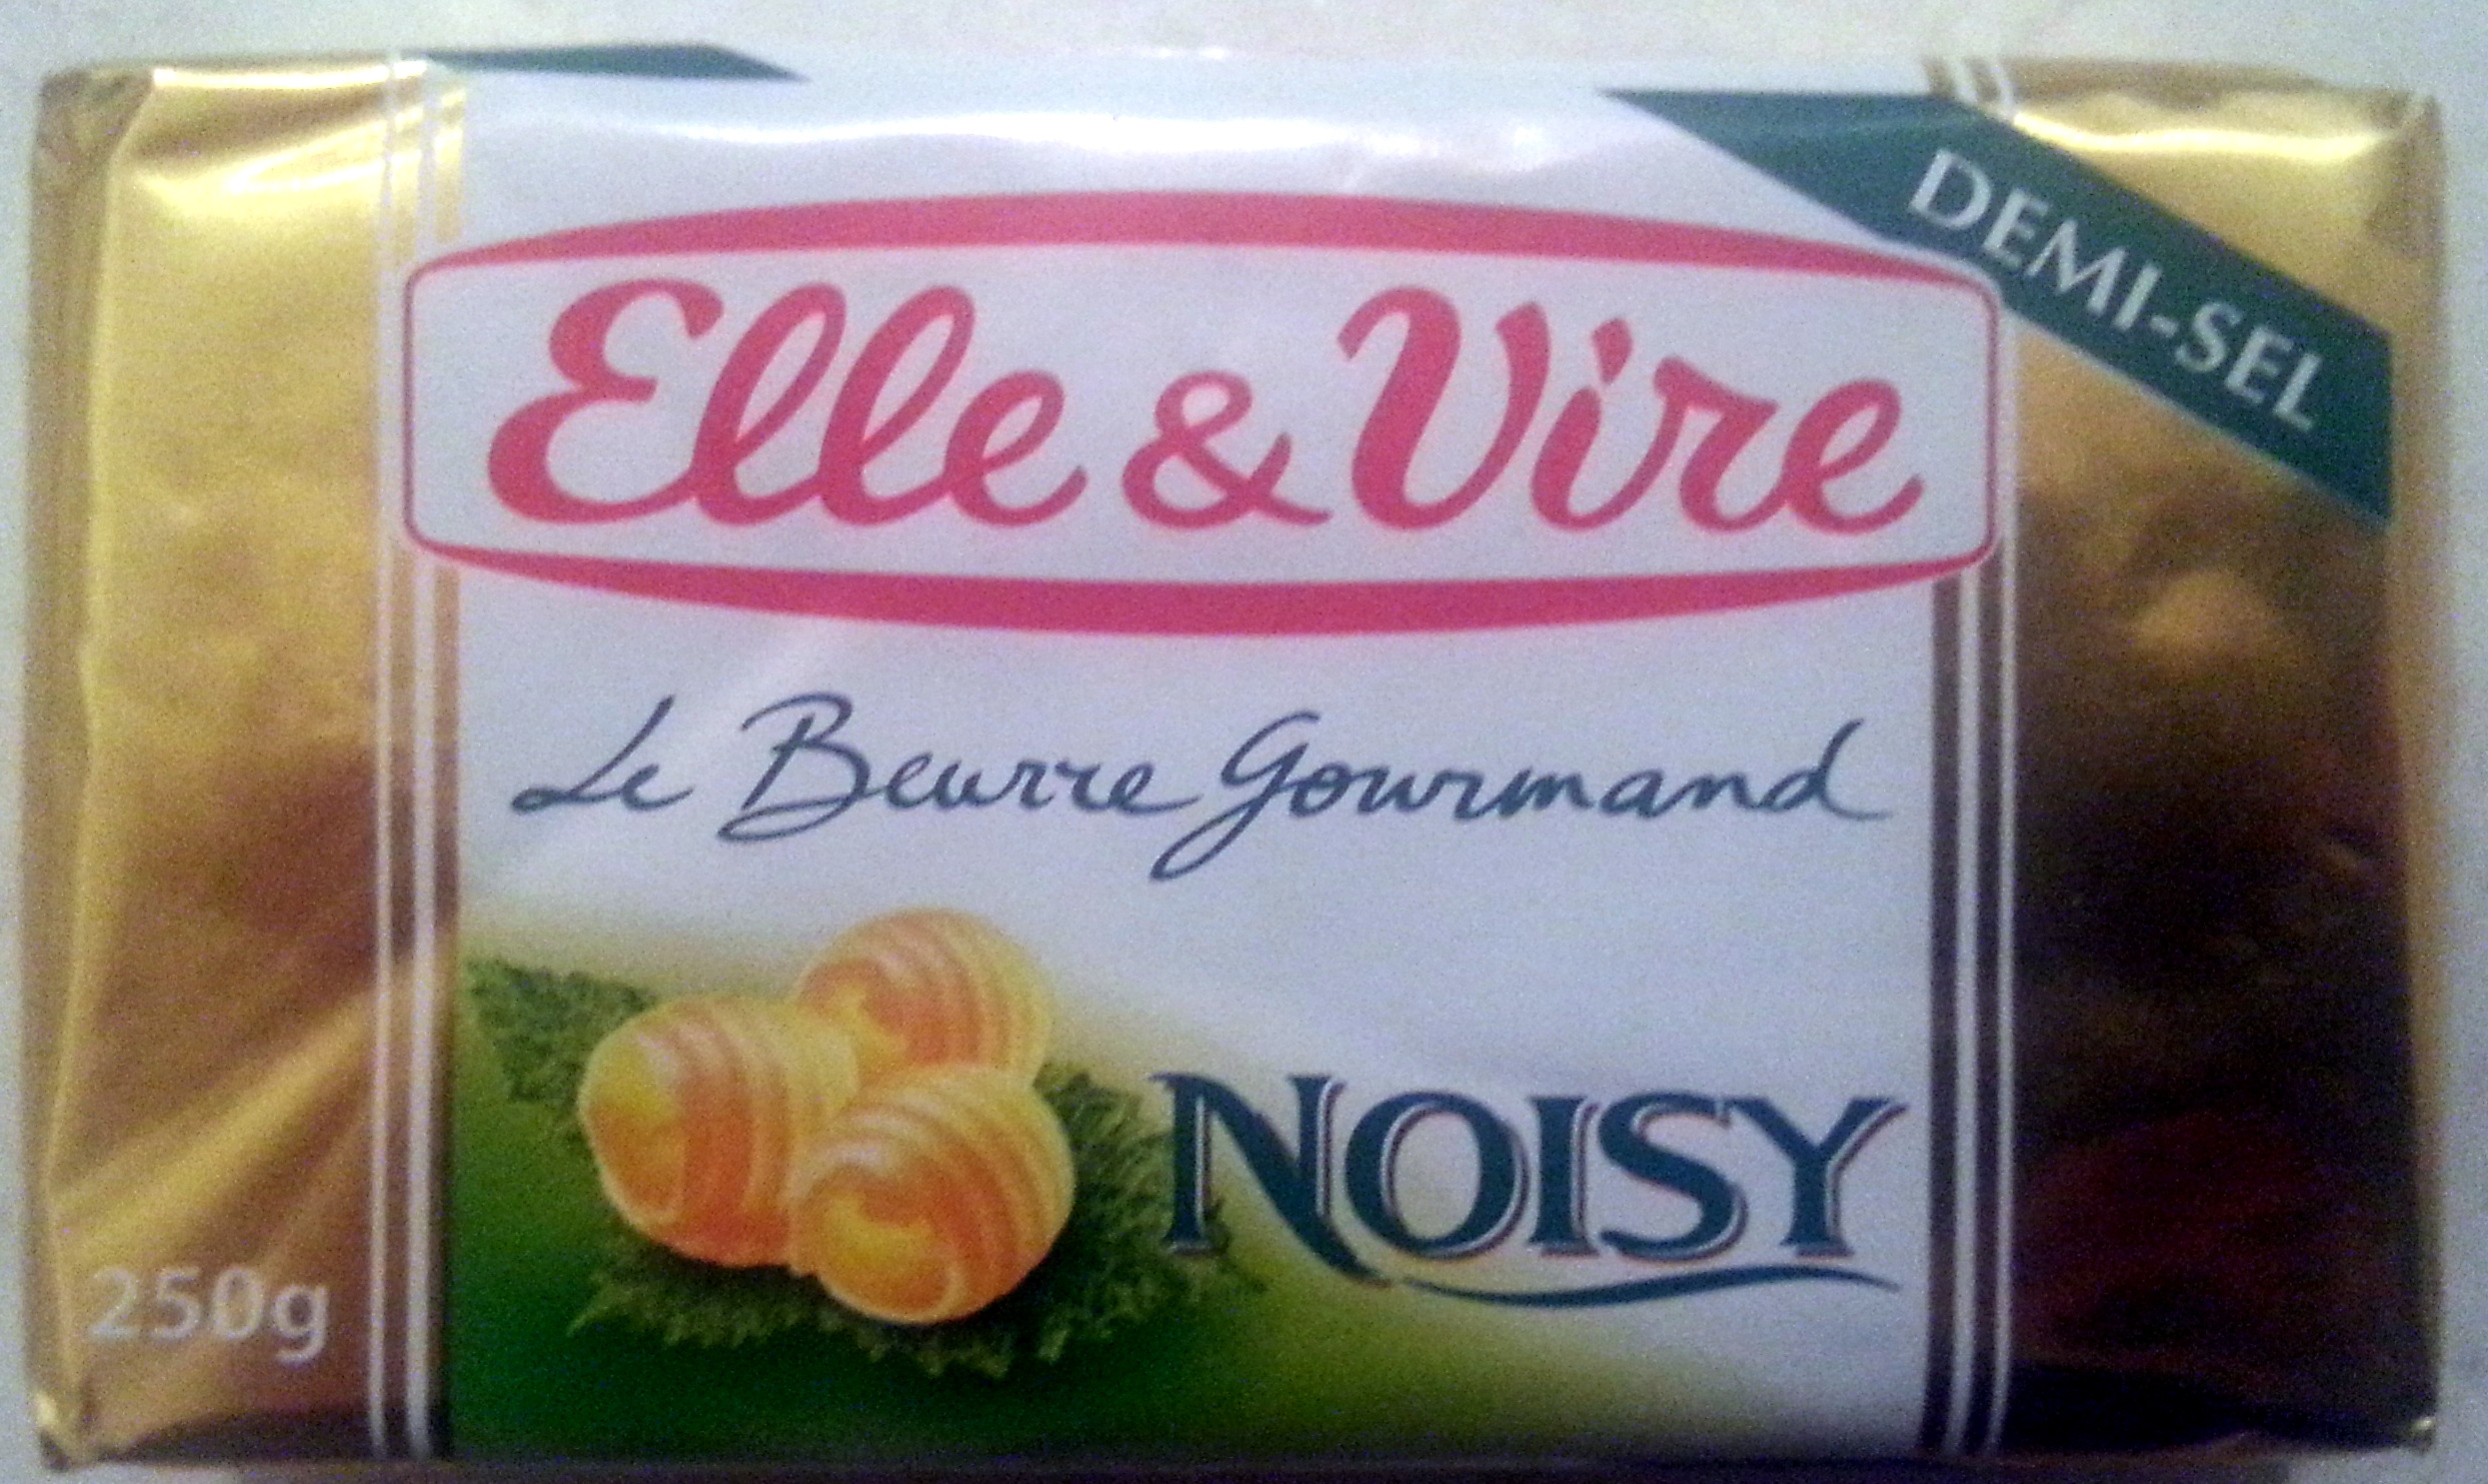 Le Beurre gourmand noisy demi-sel 80% MG - Product